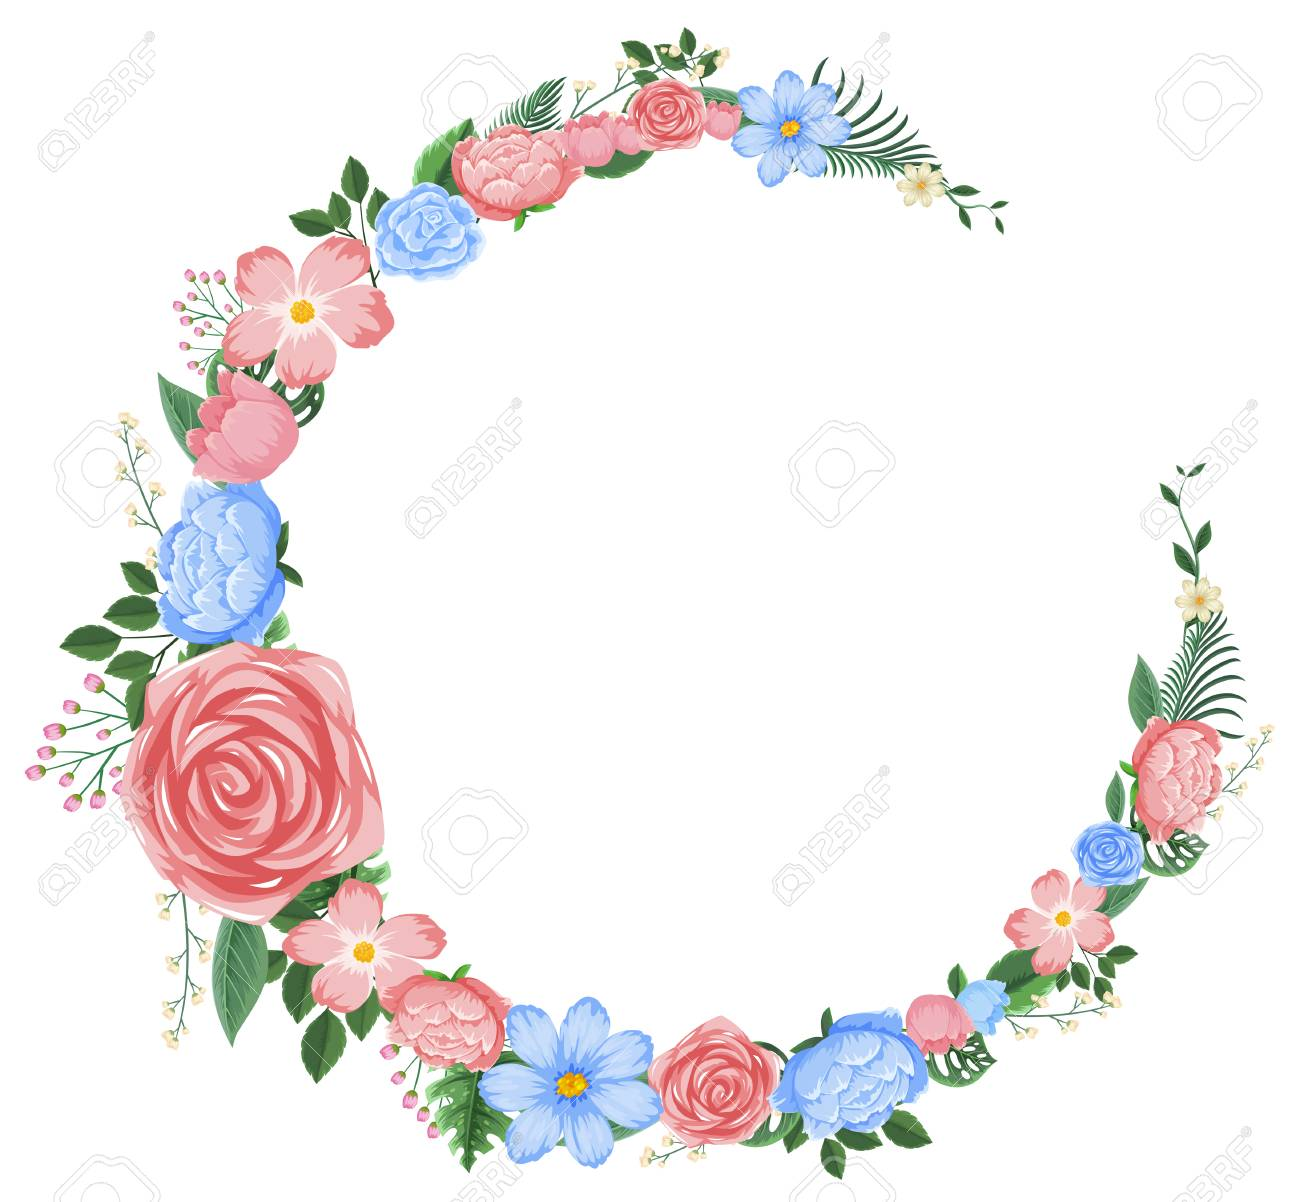 Border design with pink and blue flowers illustration.